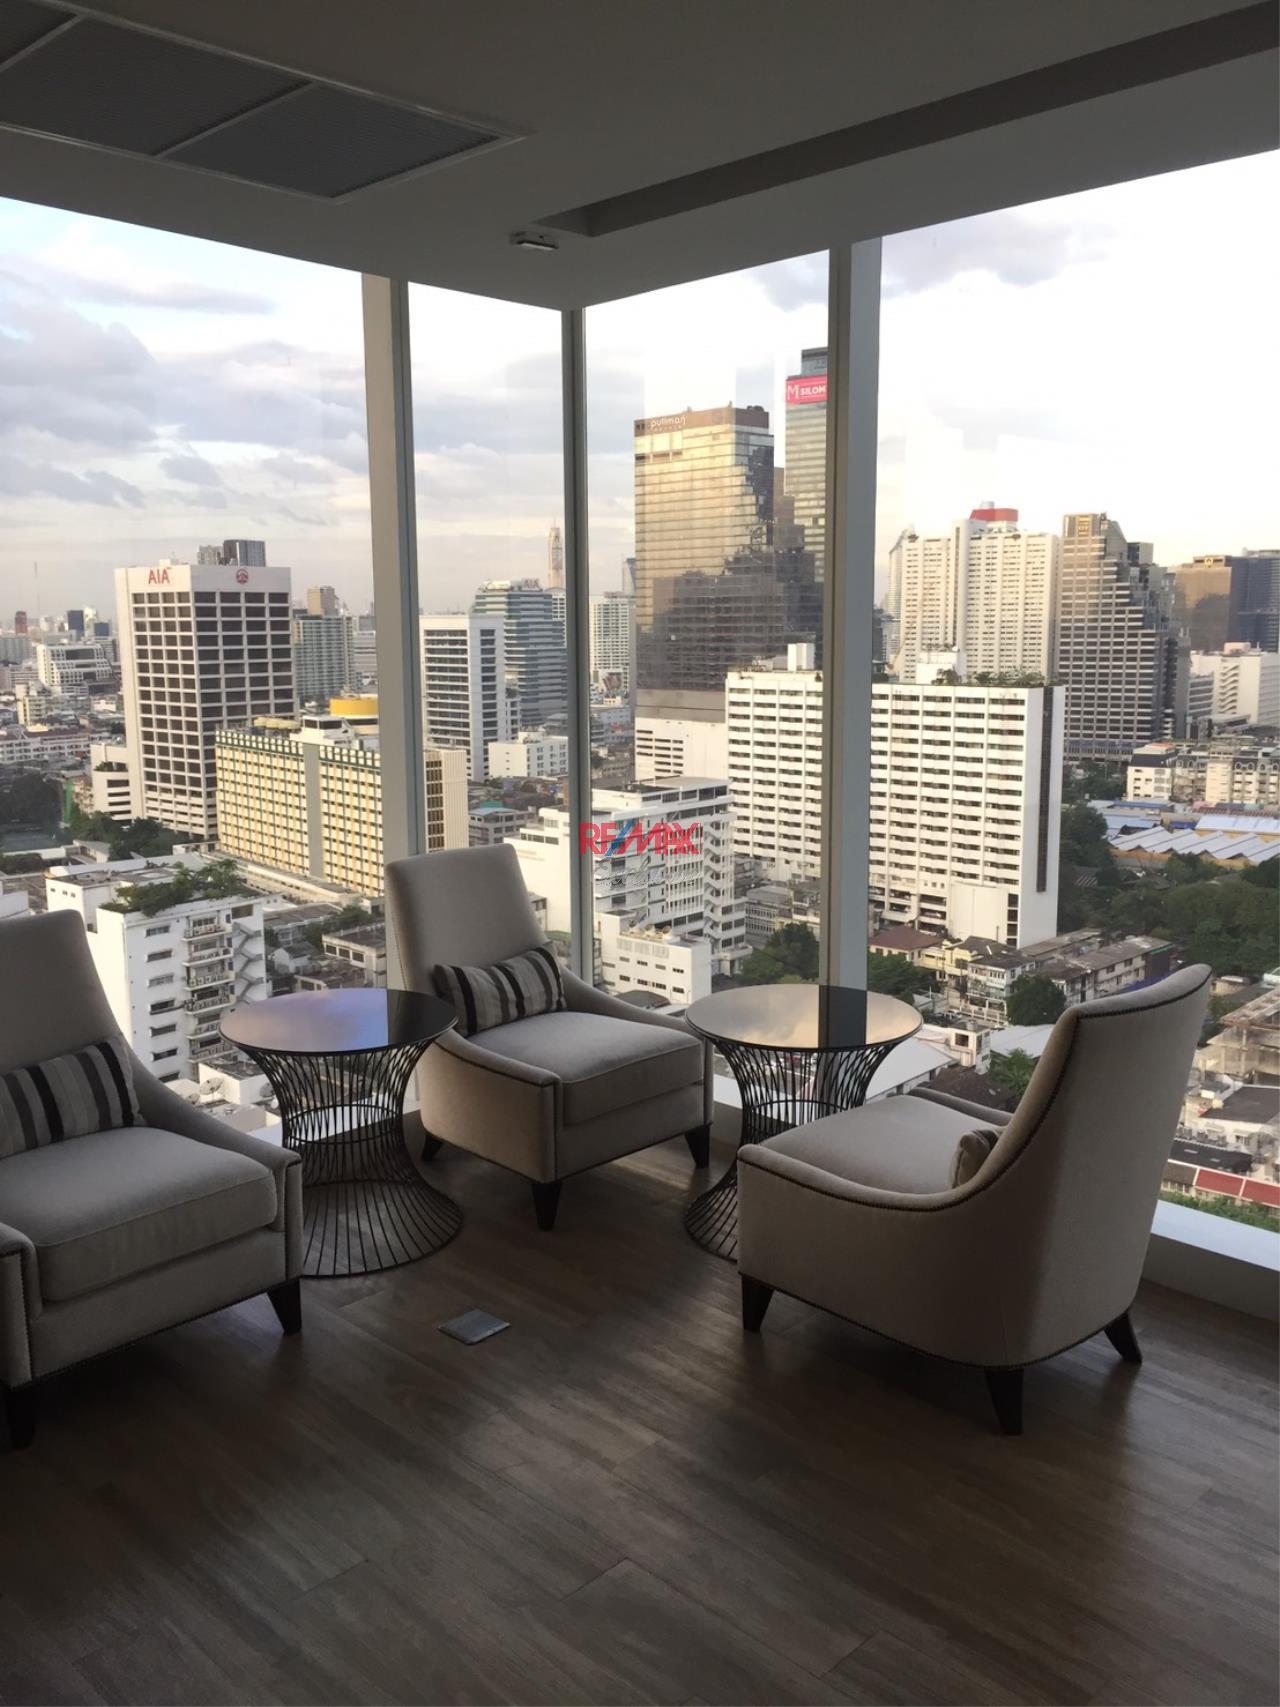 RE/MAX Exclusive Agency's The Room Sathorn Punn 1 Bedroom 50 Sqm., For Sale 9,200,000 THB 1